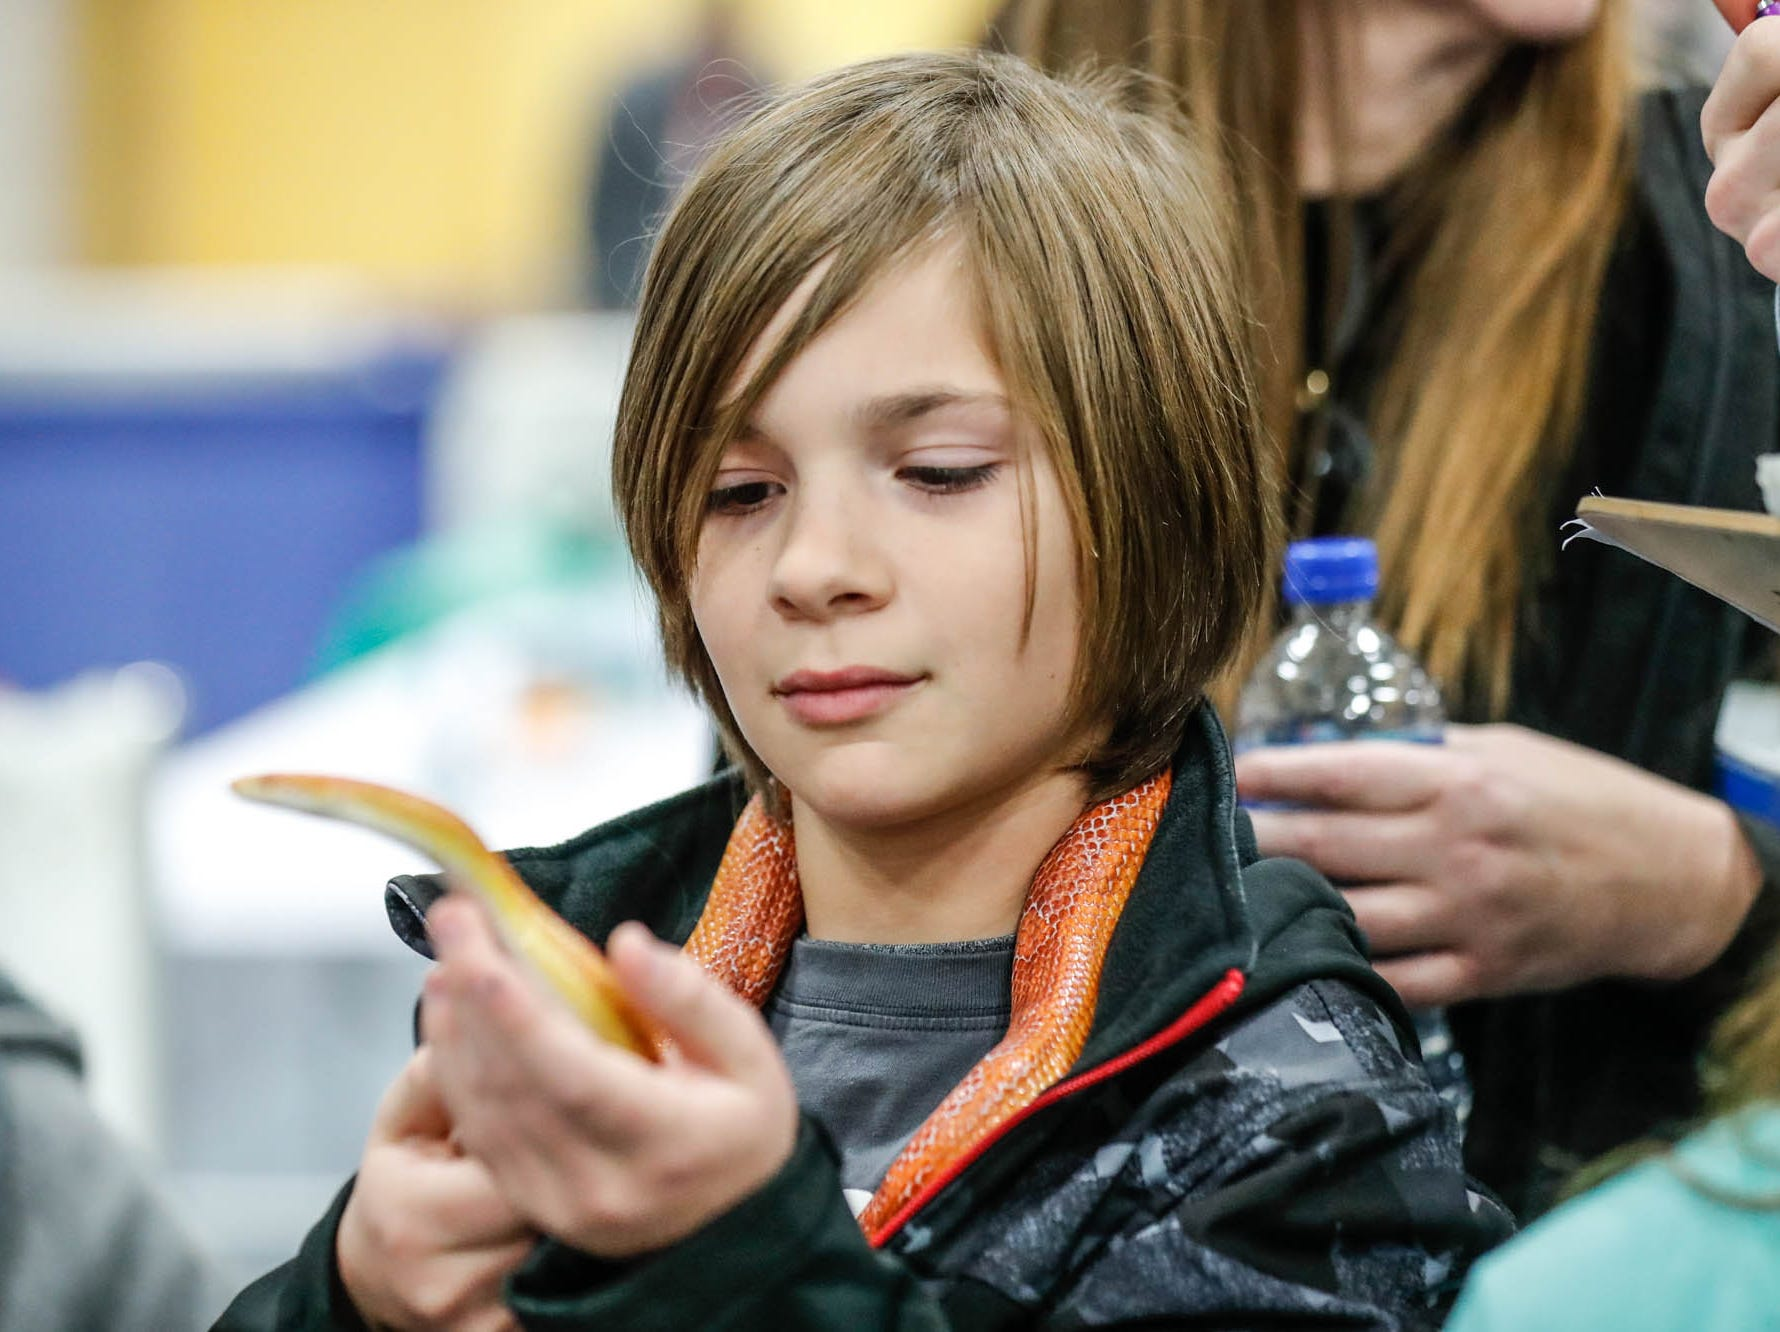 Cormac Cooper adopts a corn snake at the Great Indy Pet Expo, held at the Indiana State Fairgrounds on Sat. Nov. 10, 2018.